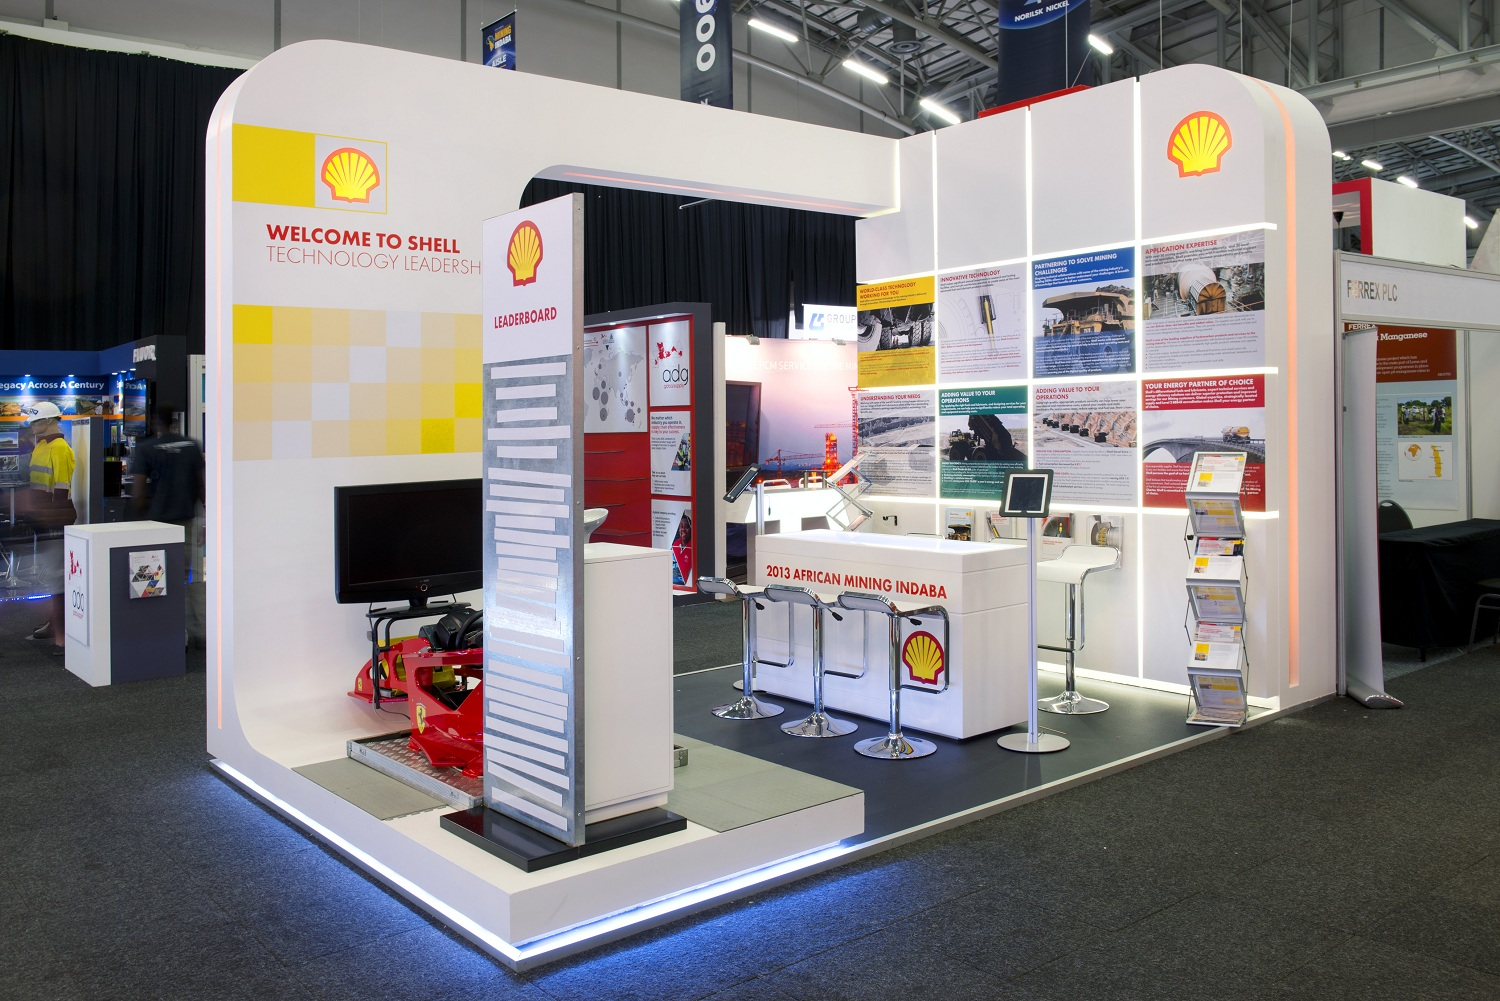 Images Of Small Exhibition Stands : Mining indaba hott d exhibition stands for clients shell